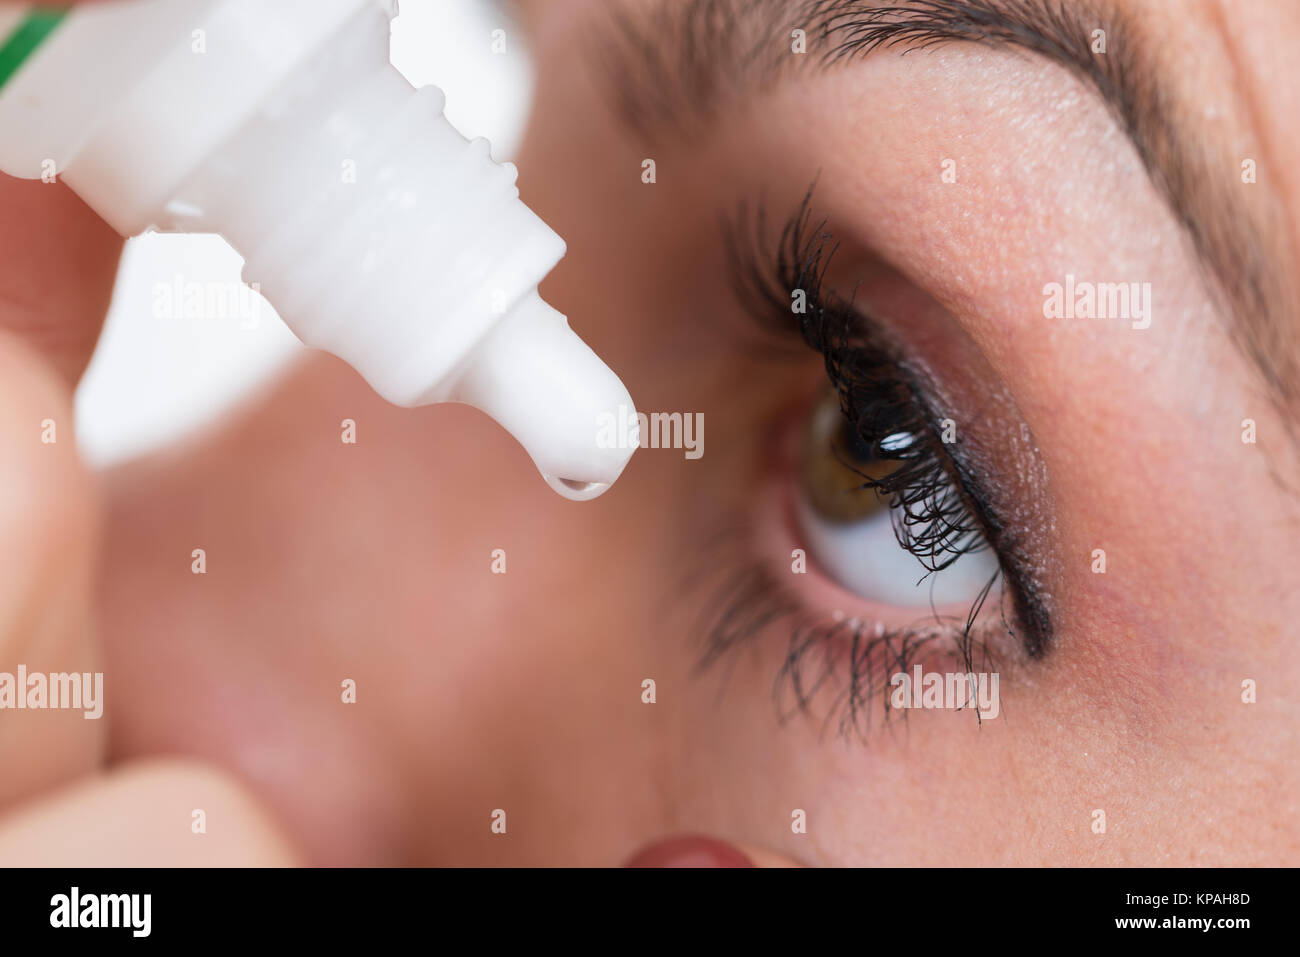 Close-up Of Person Pouring Drops In Eyes - Stock Image